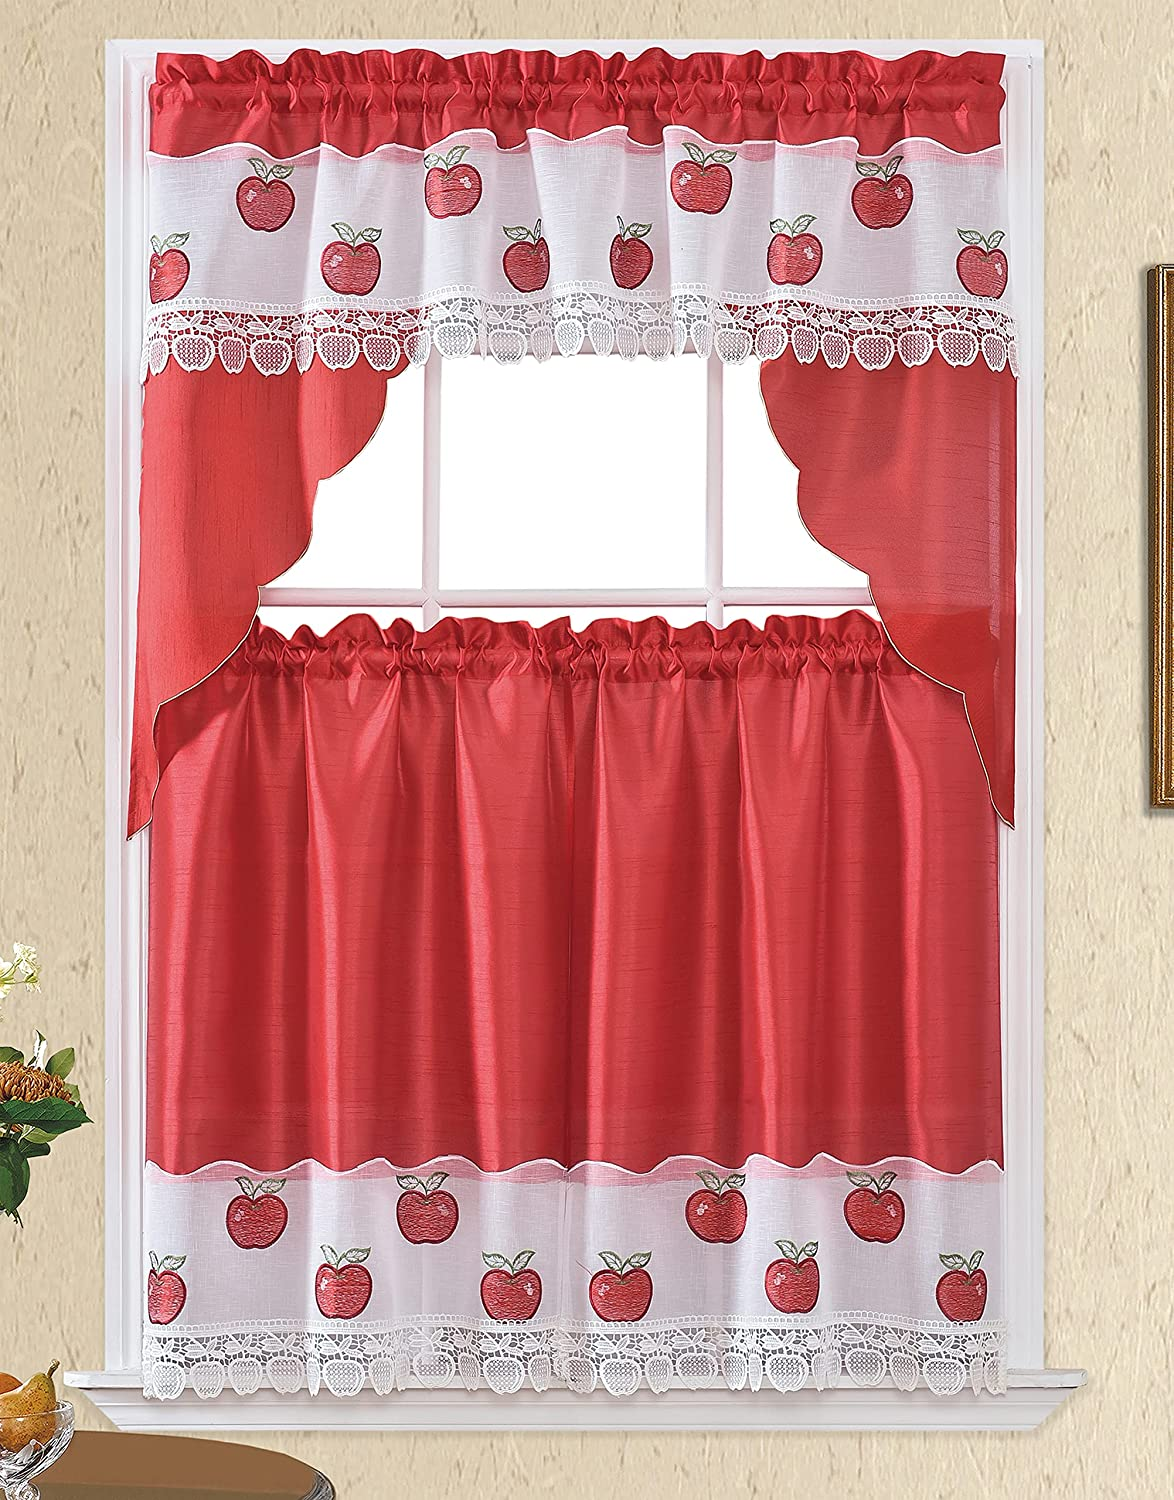 3pc Rod Pocket Embroidered Kitchen Curtains and Valances Set Swag Curtains & Tier Set 36 Inch Length Red Apple